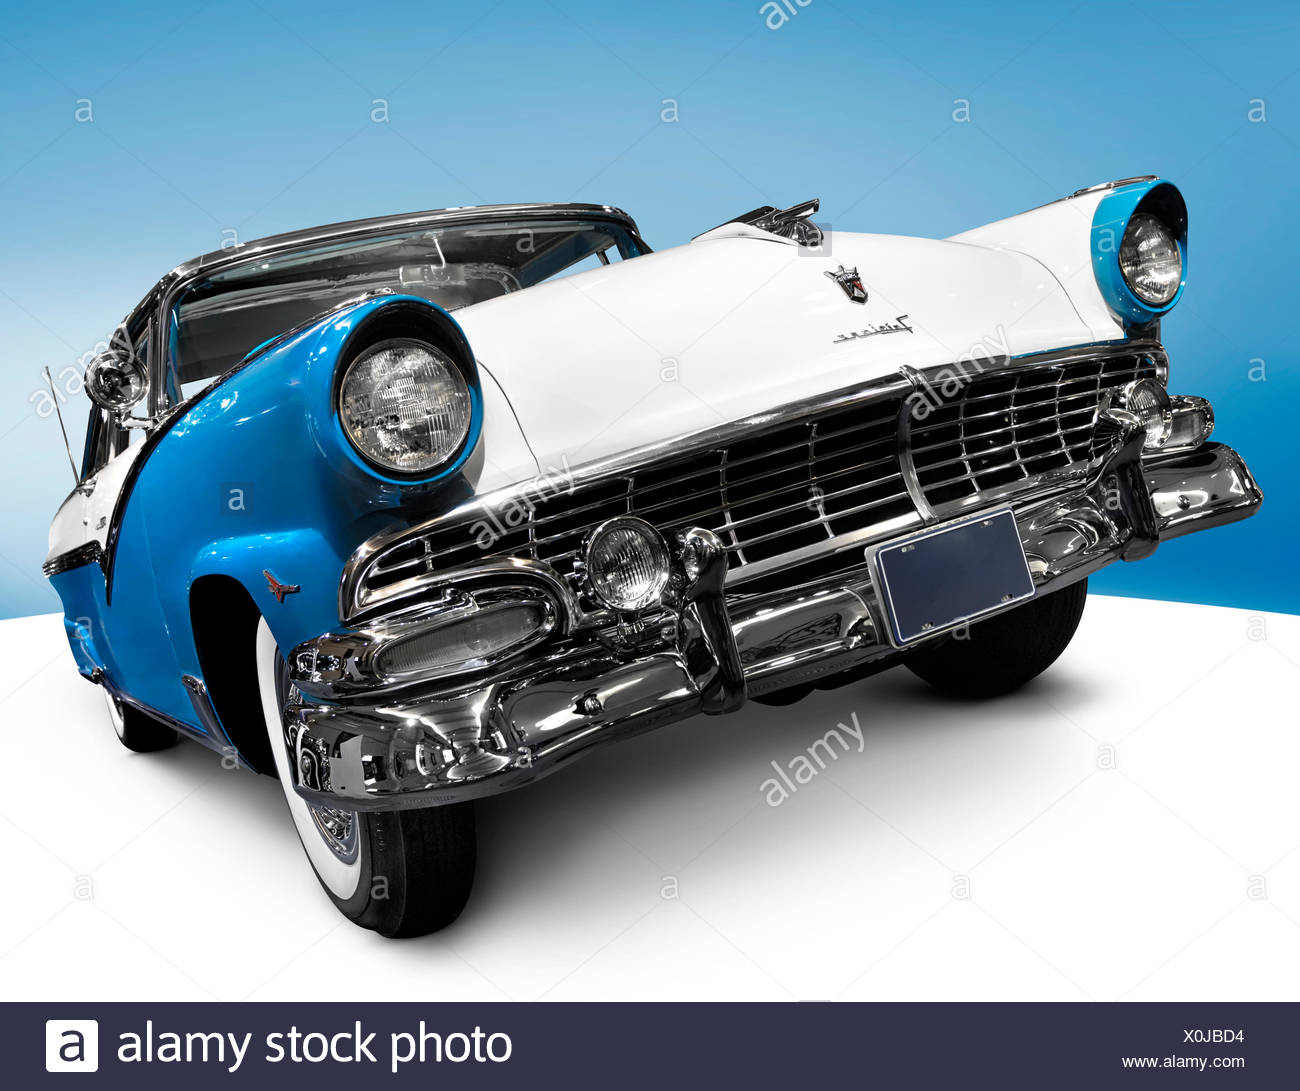 Automobile Victoria Classic Stock Photos 1953 Ford Crown Skyliner Turquoise Blue 1956 Glasstop Vicky Retro Car By Motor Company